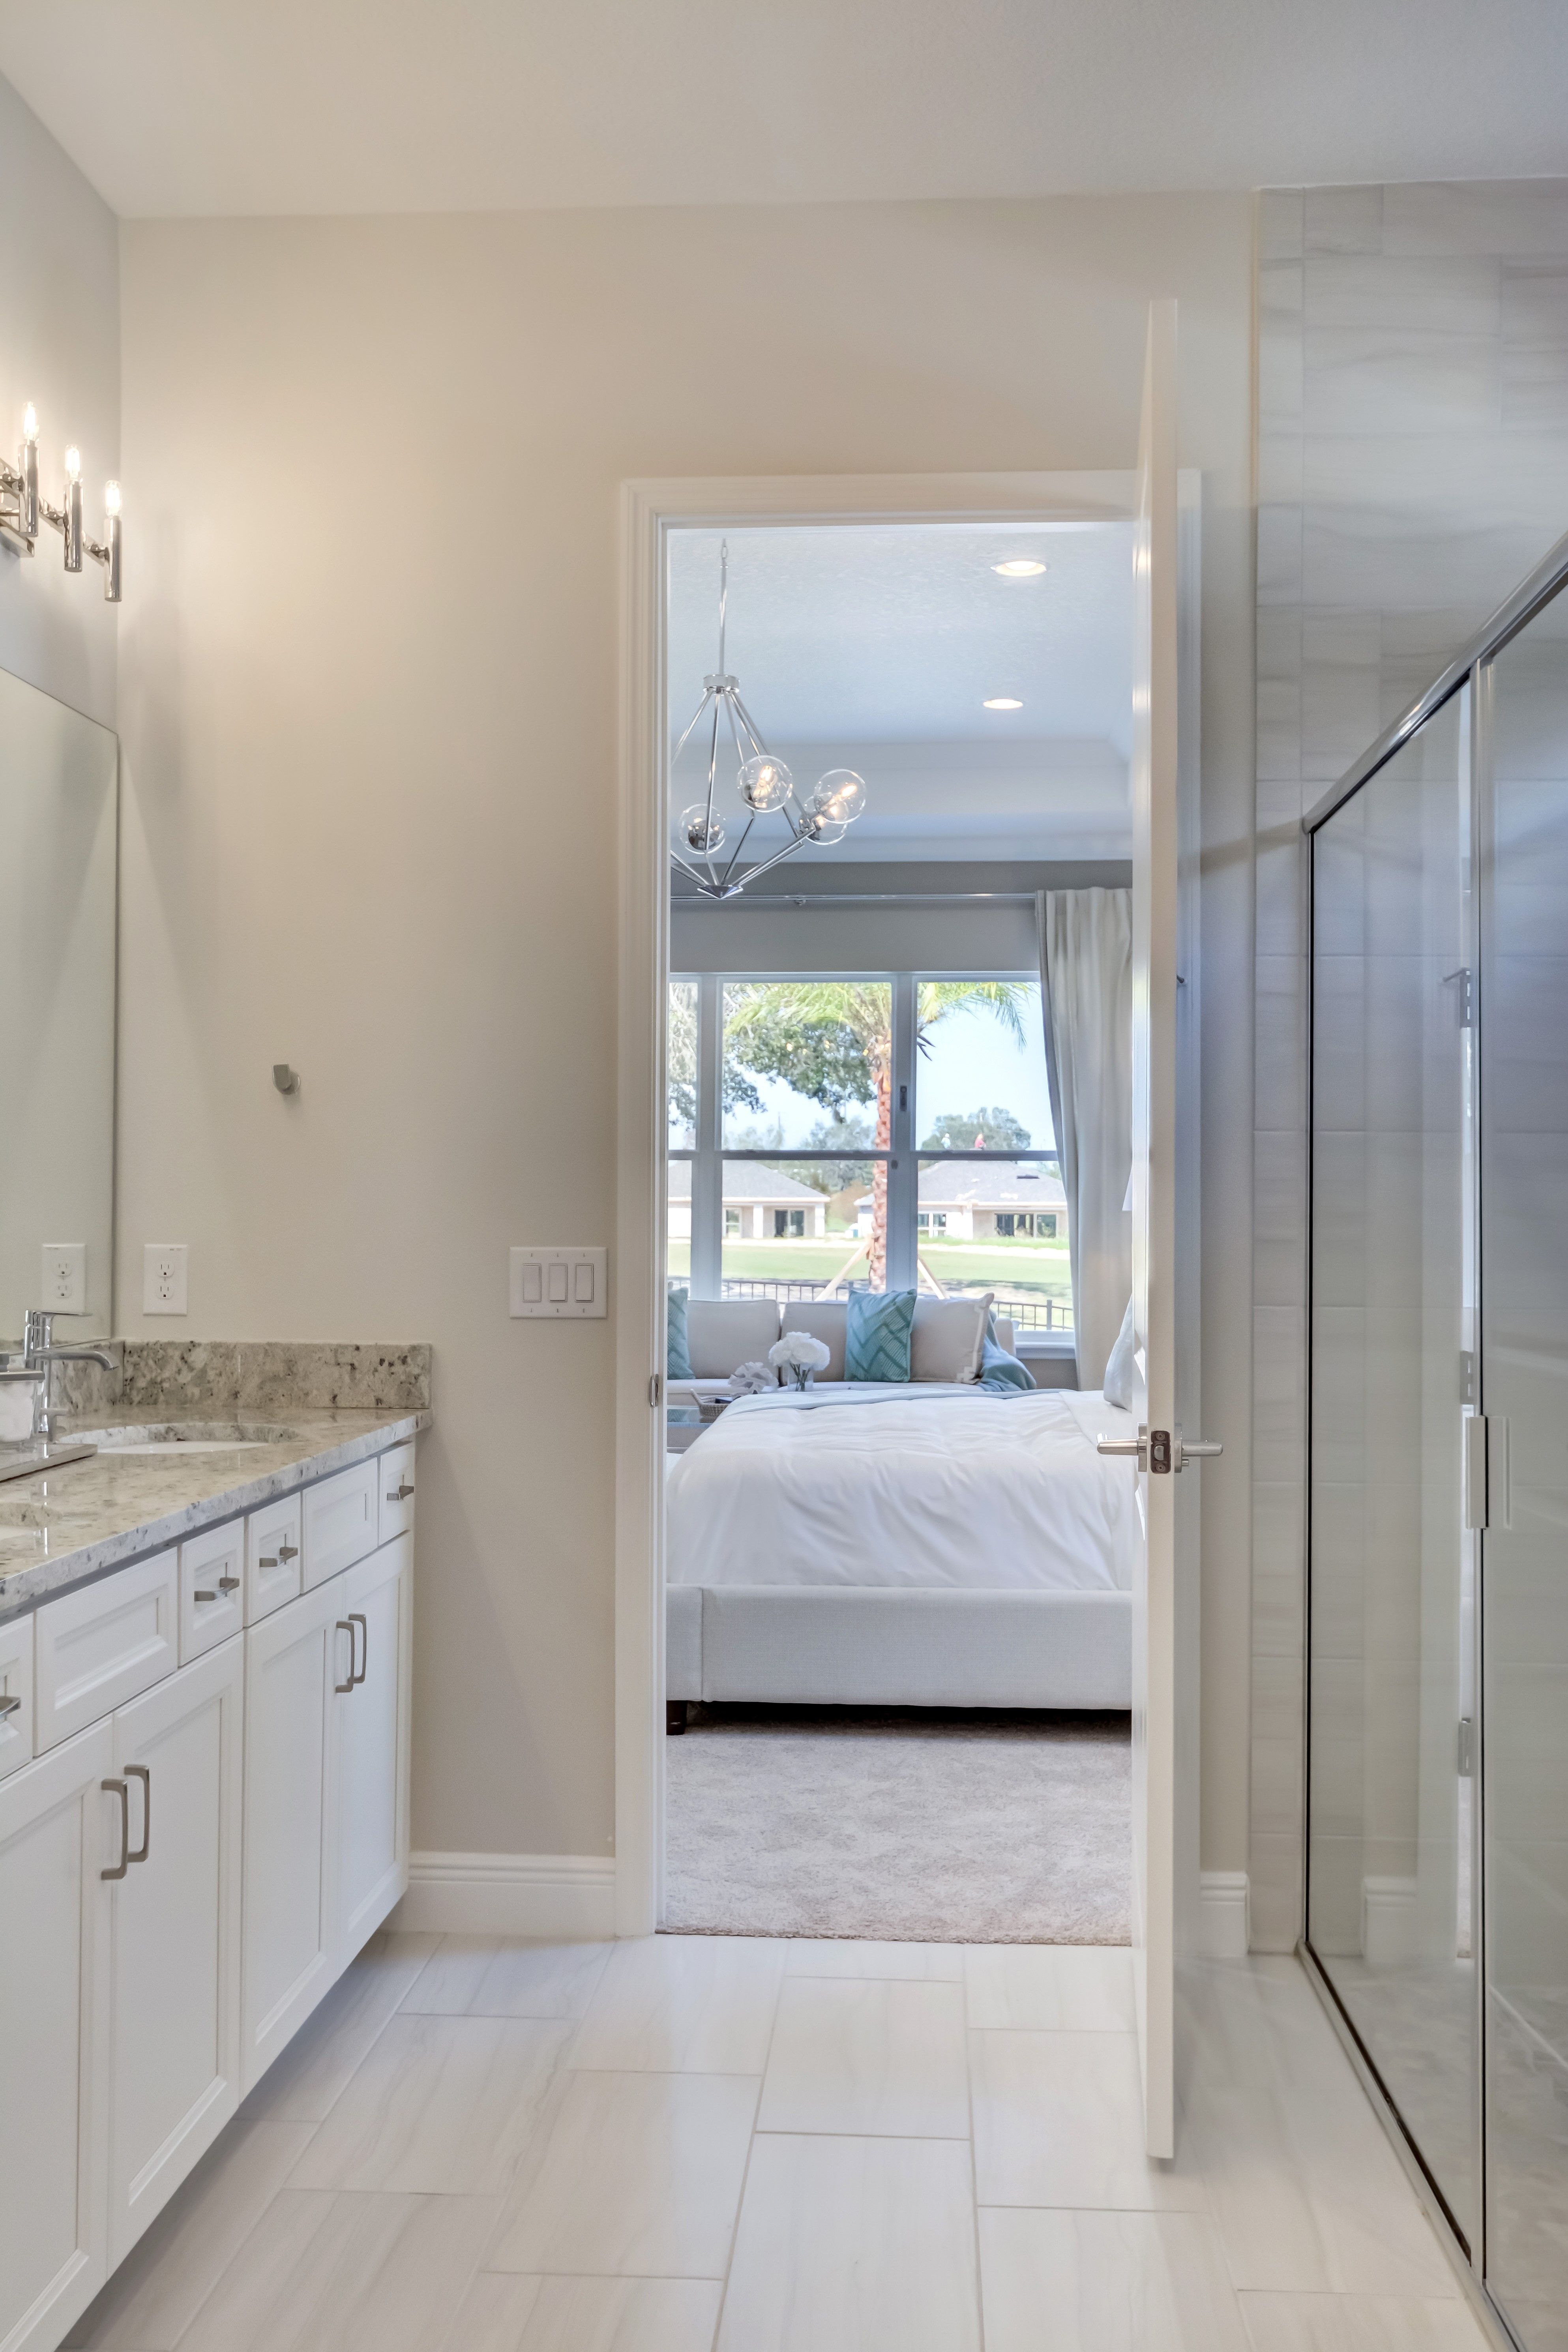 Bathroom featured in the Saint Lucia By K. Hovnanian's® Four Seasons in Orlando, FL